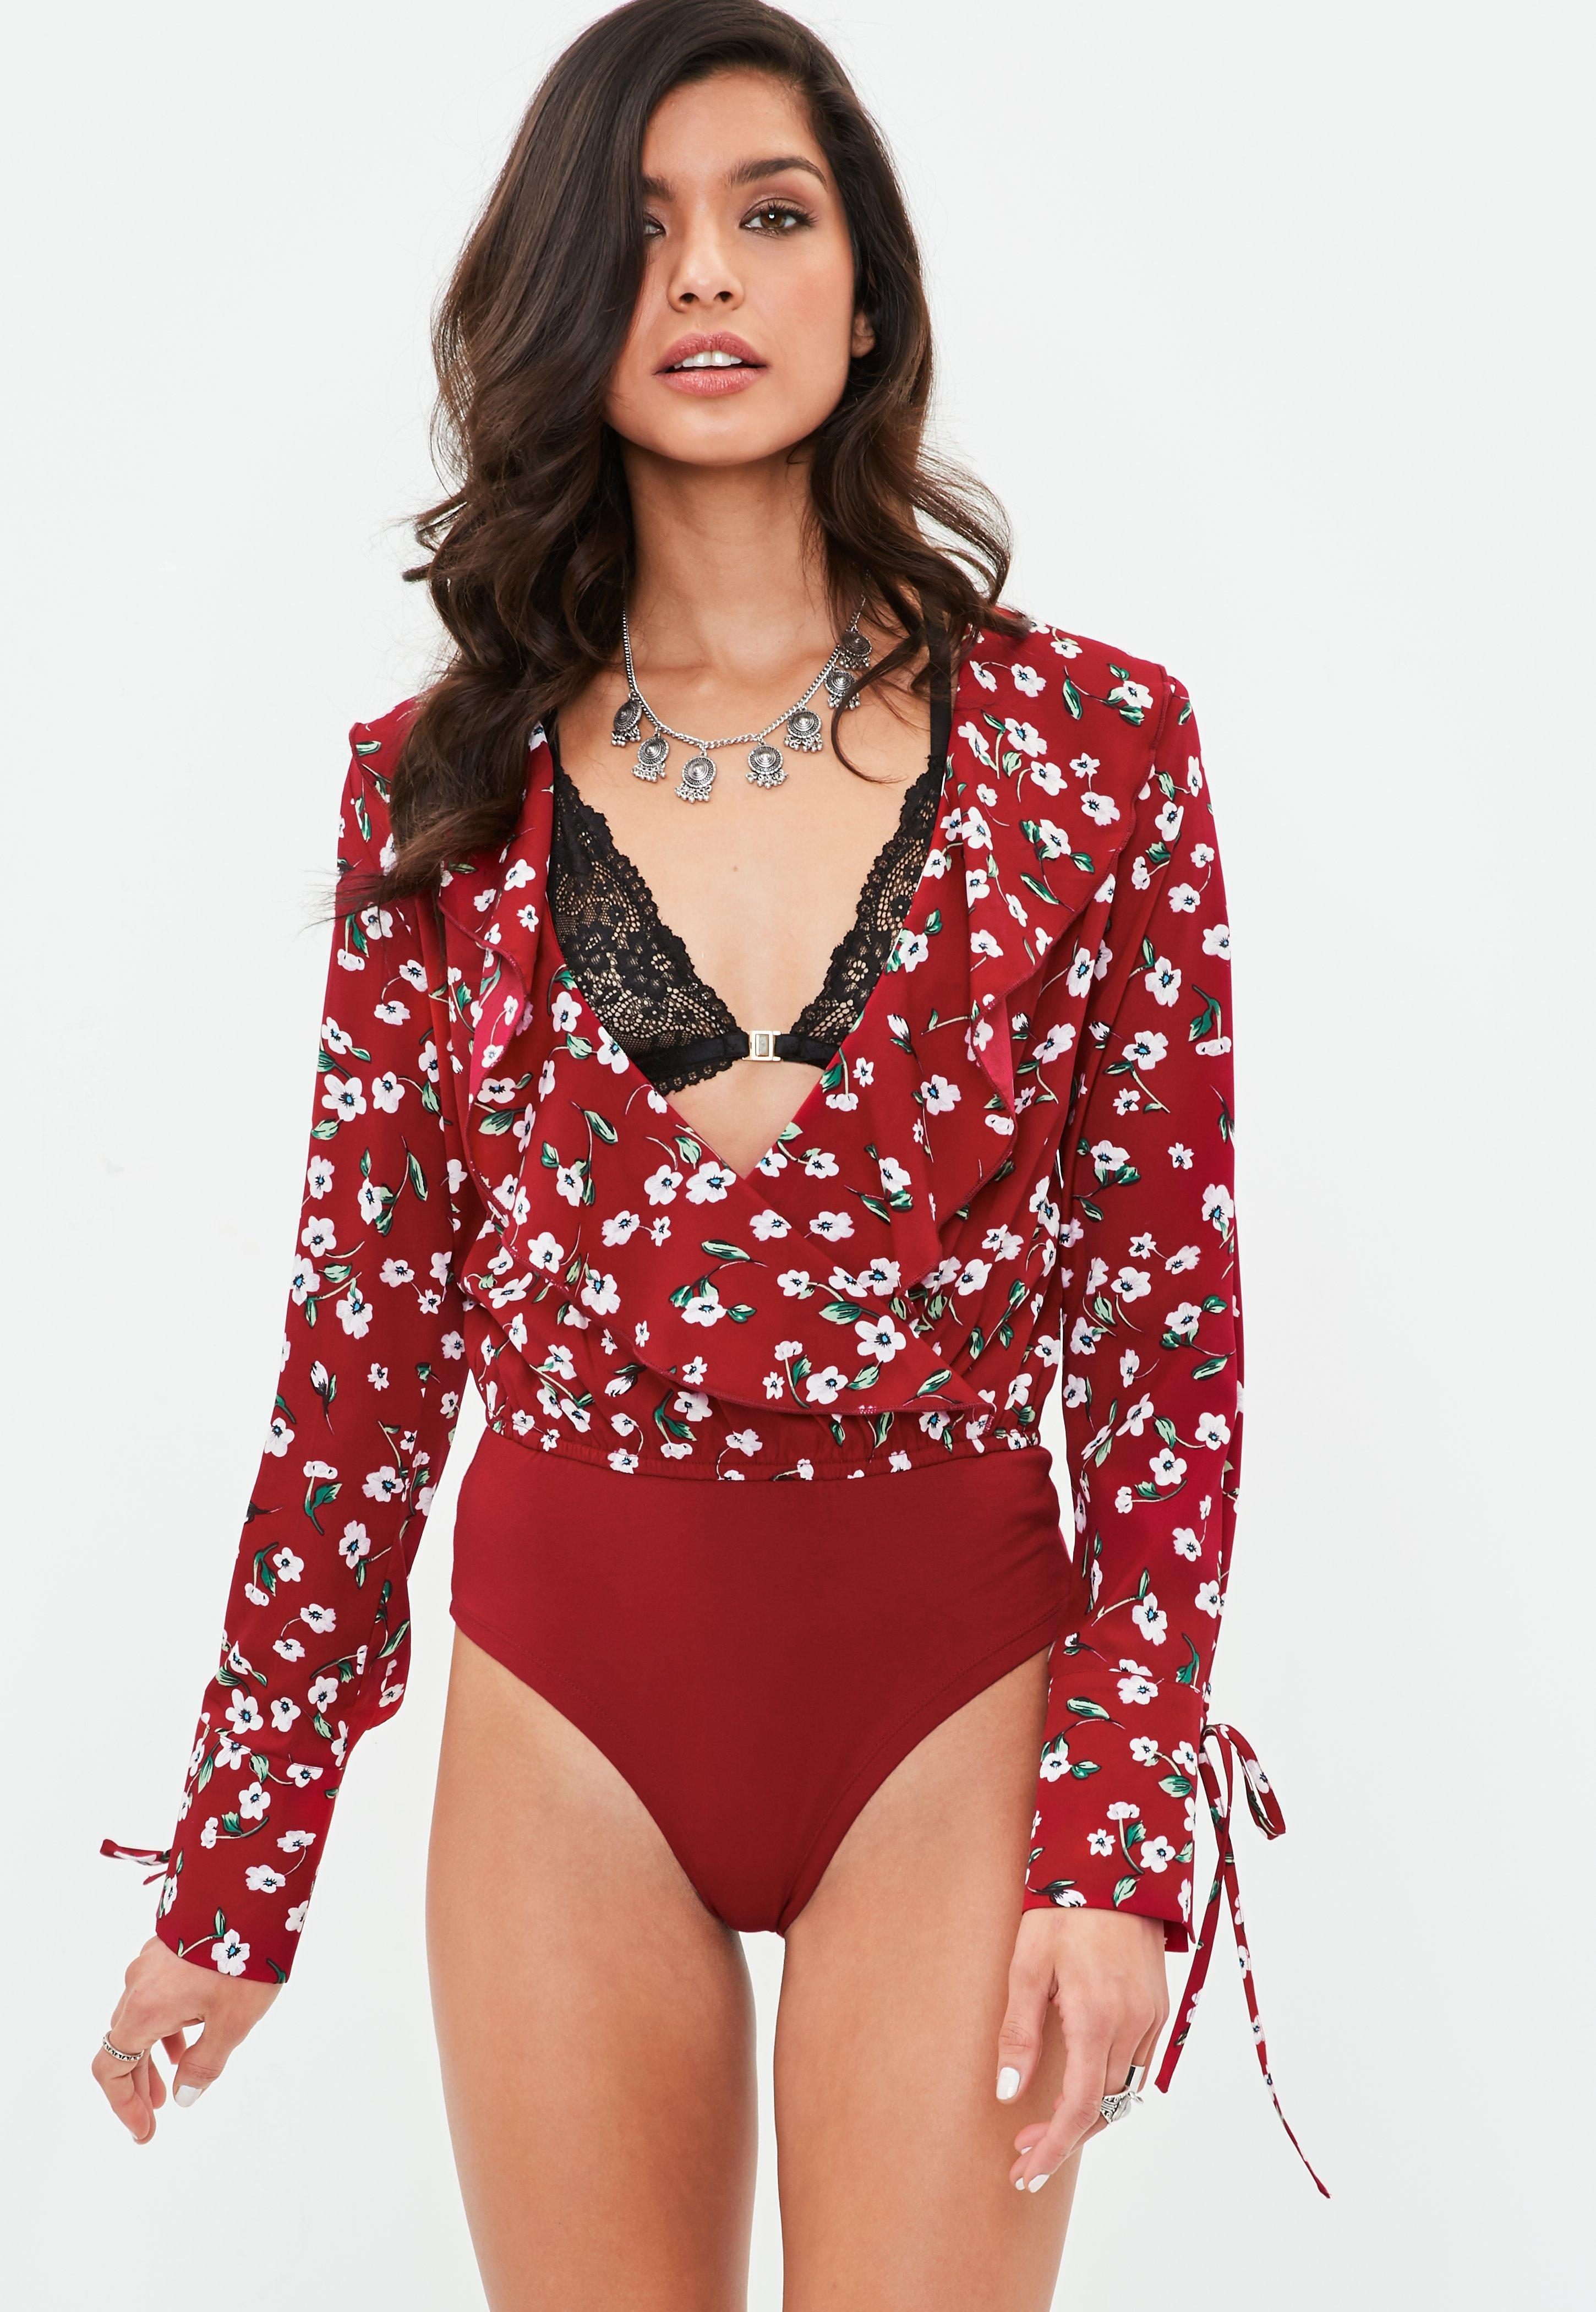 Lyst - Missguided Red Floral Frill Wrap Bodysuit in Red 87ff5bce8